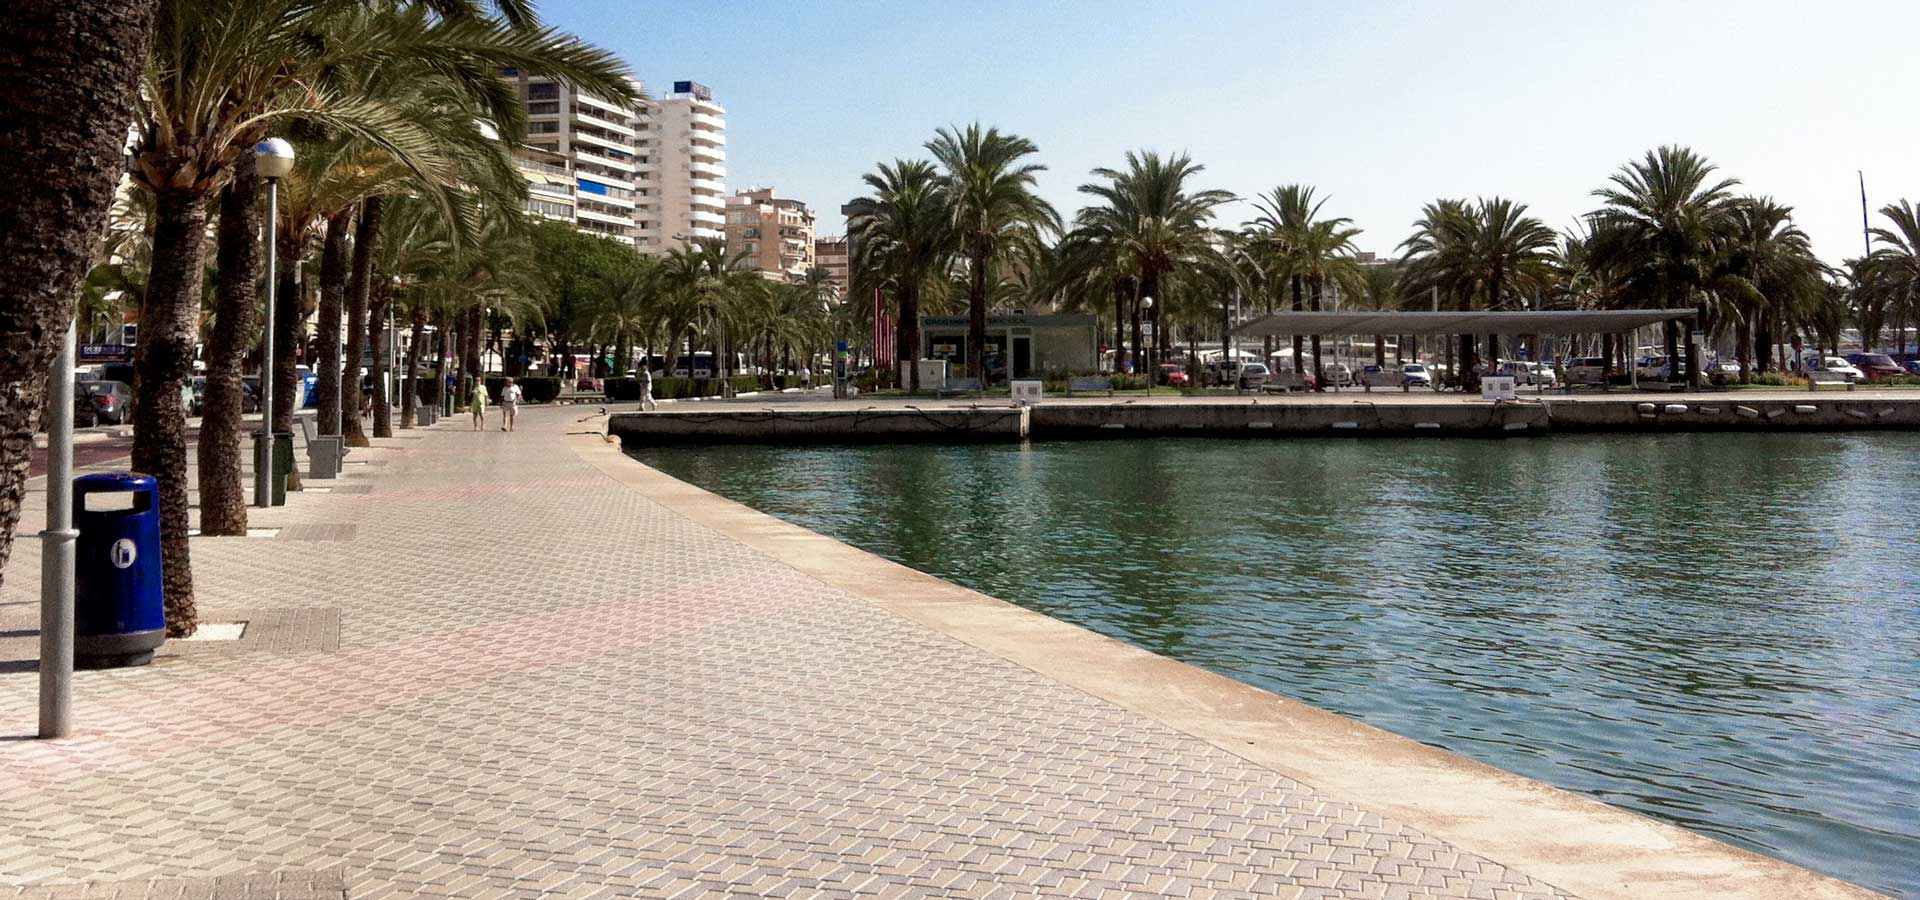 paseo maritimo palma mallorca majorca apartments penthouse for sale buy search casafari real estate properties spain